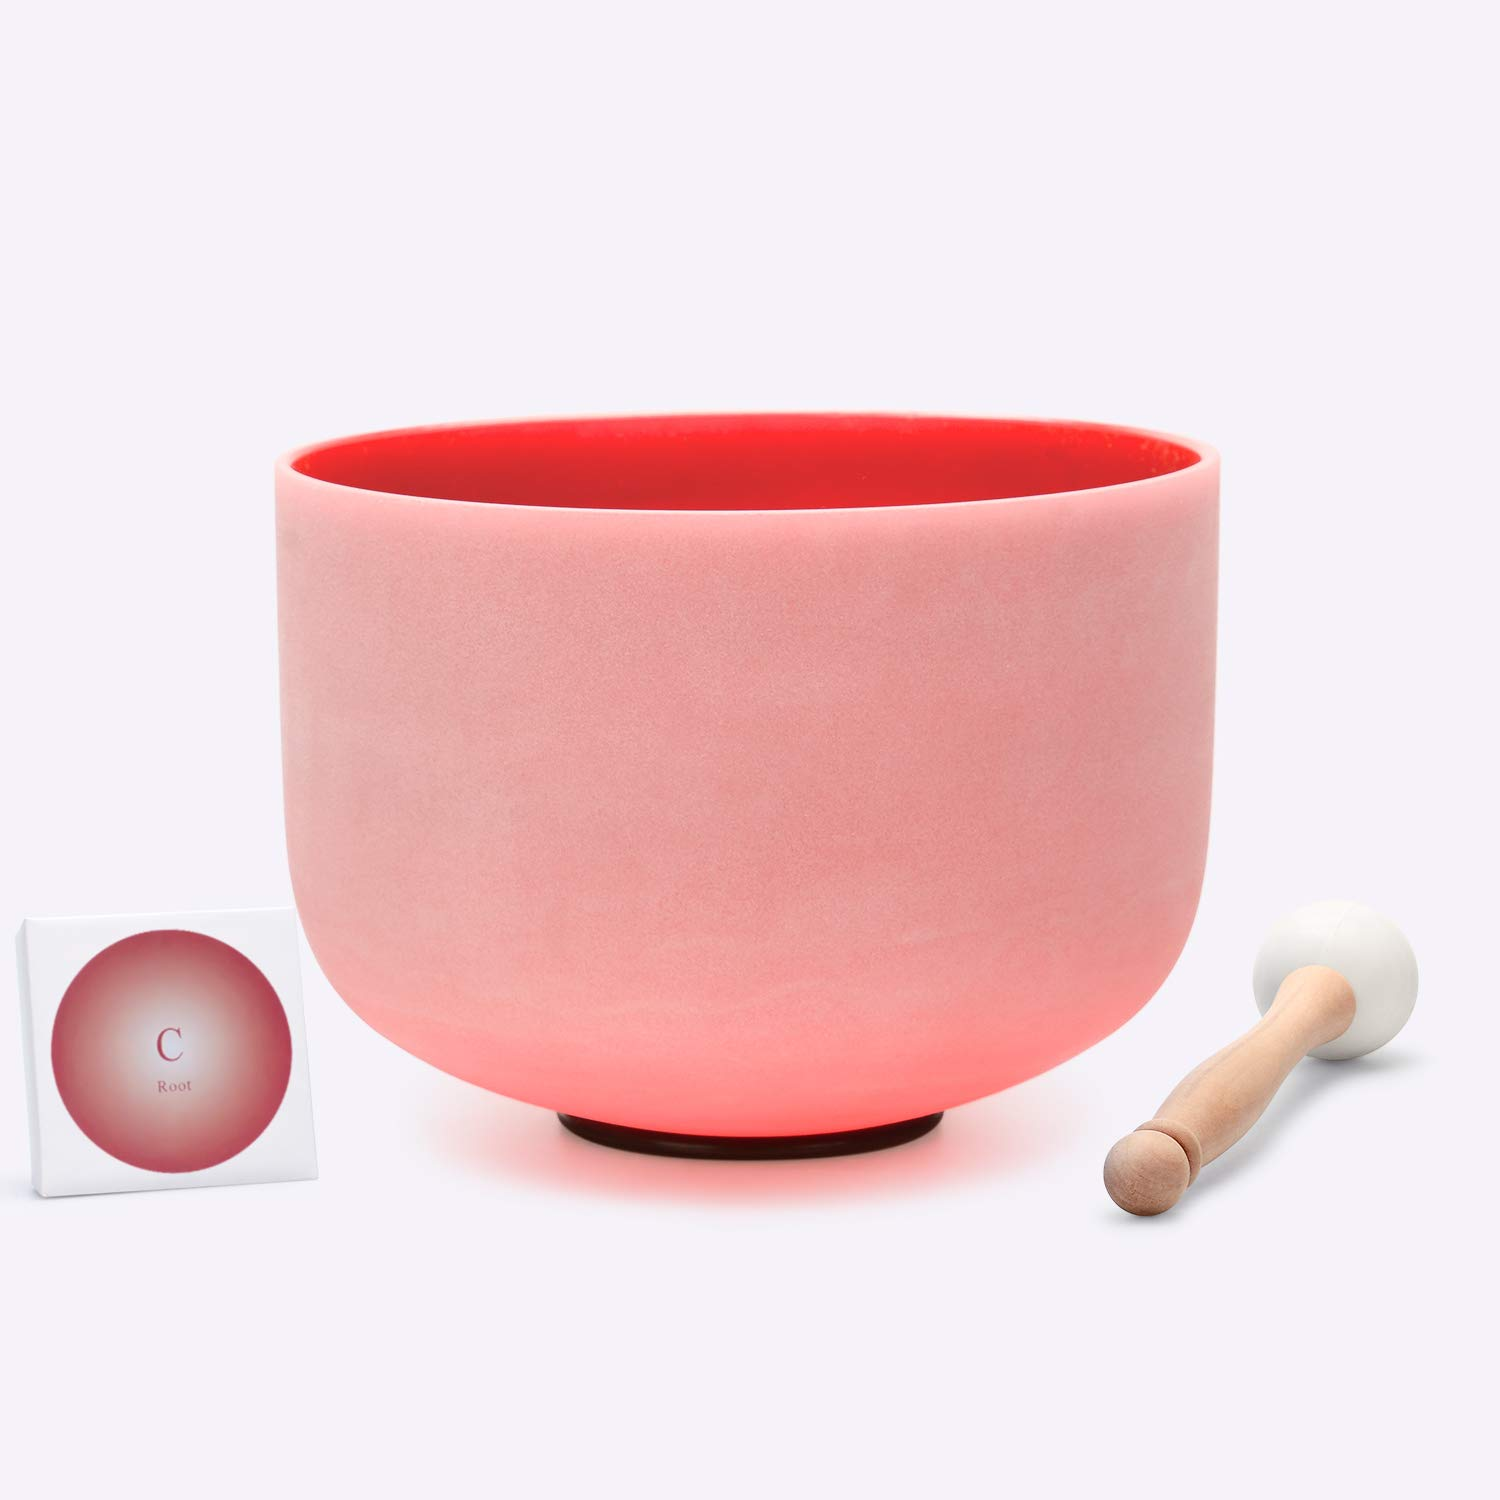 TOPFUND Red Color Quartz Crystal Singing Bowl C Note Root Chakra12 inch O-Ring and Rubber Mallet Included by TOPFUND (Image #1)